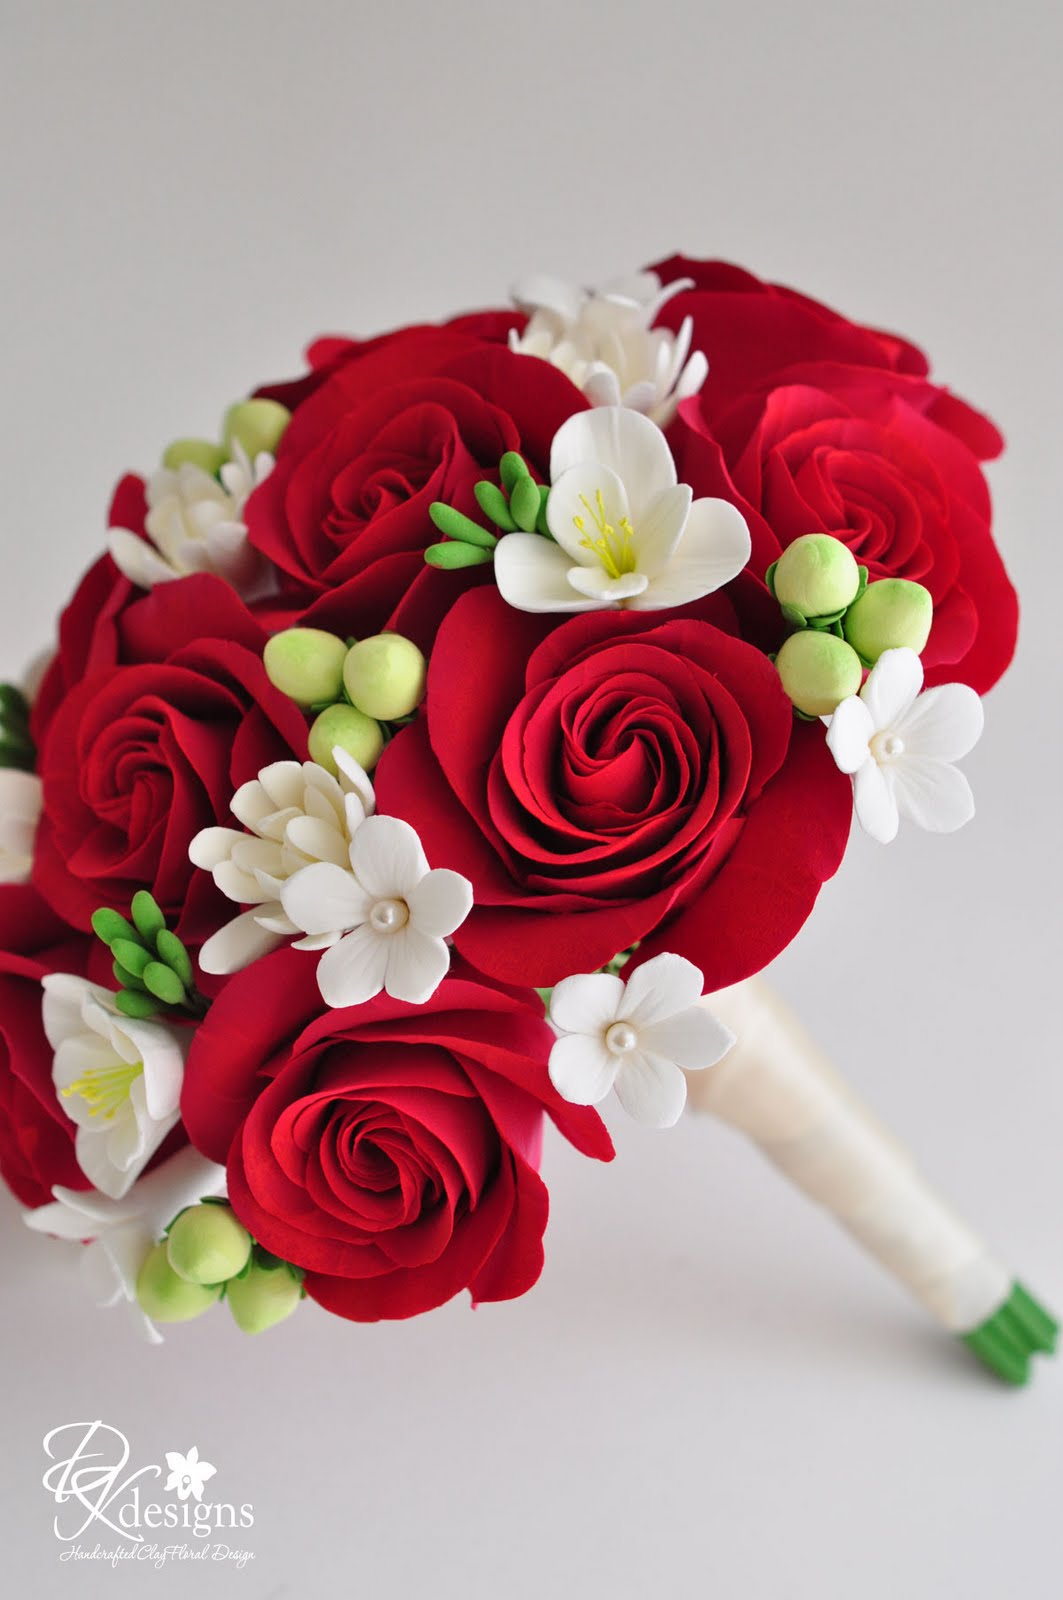 red roses freesia stephanotis tuberose and hipericum berry bouquet and boutonniere dk designs. Black Bedroom Furniture Sets. Home Design Ideas